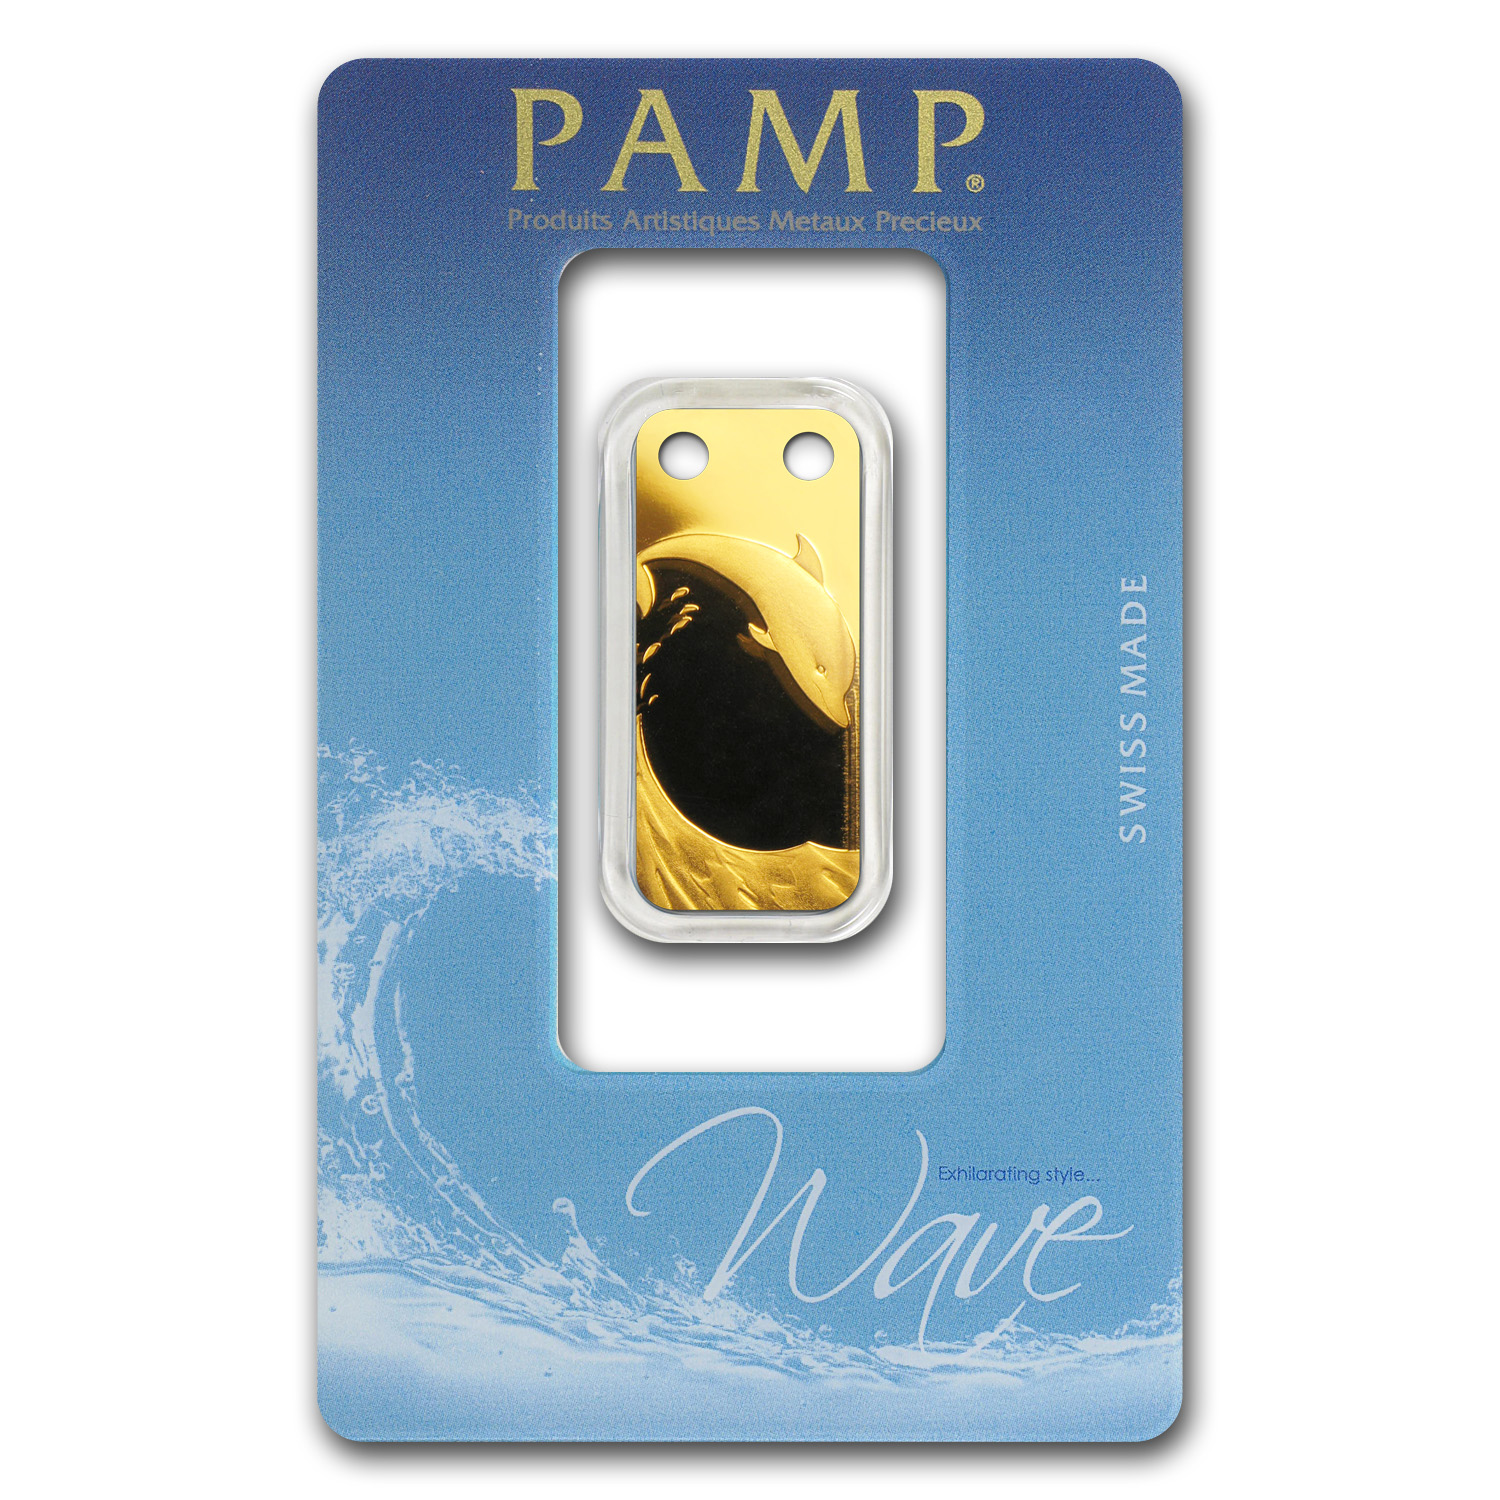 1/5 oz Gold Pendant - Pamp Suisse Ingot (Dolphin, Proof)